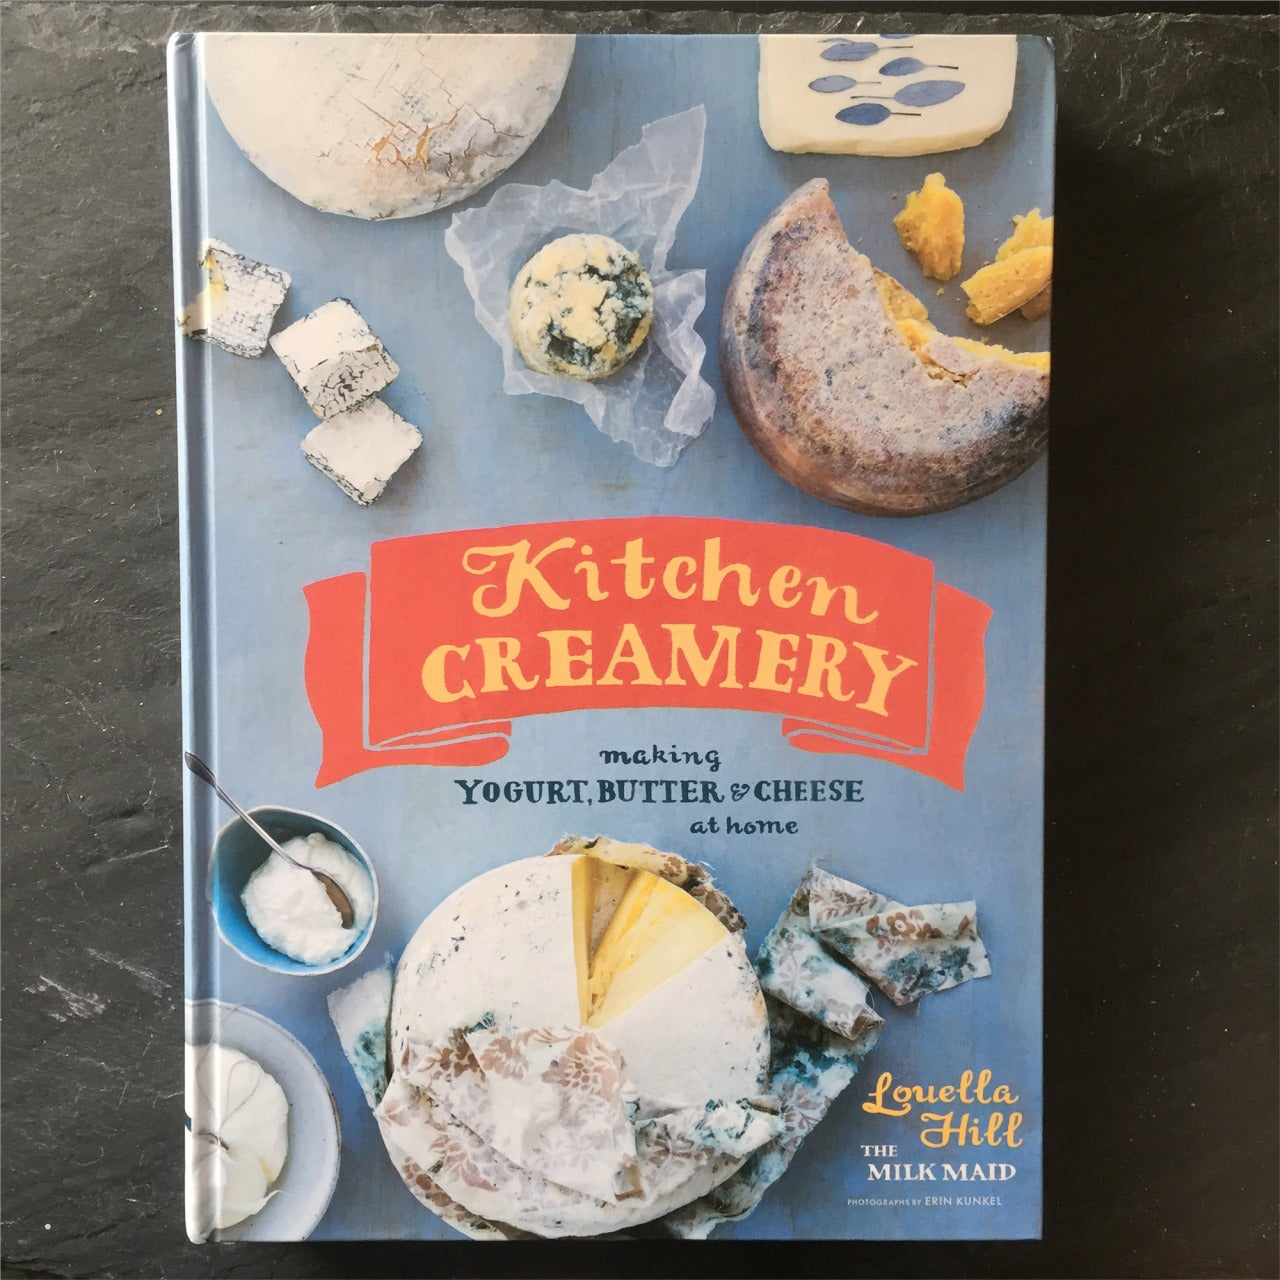 A comprehensive treatise on cheese-making